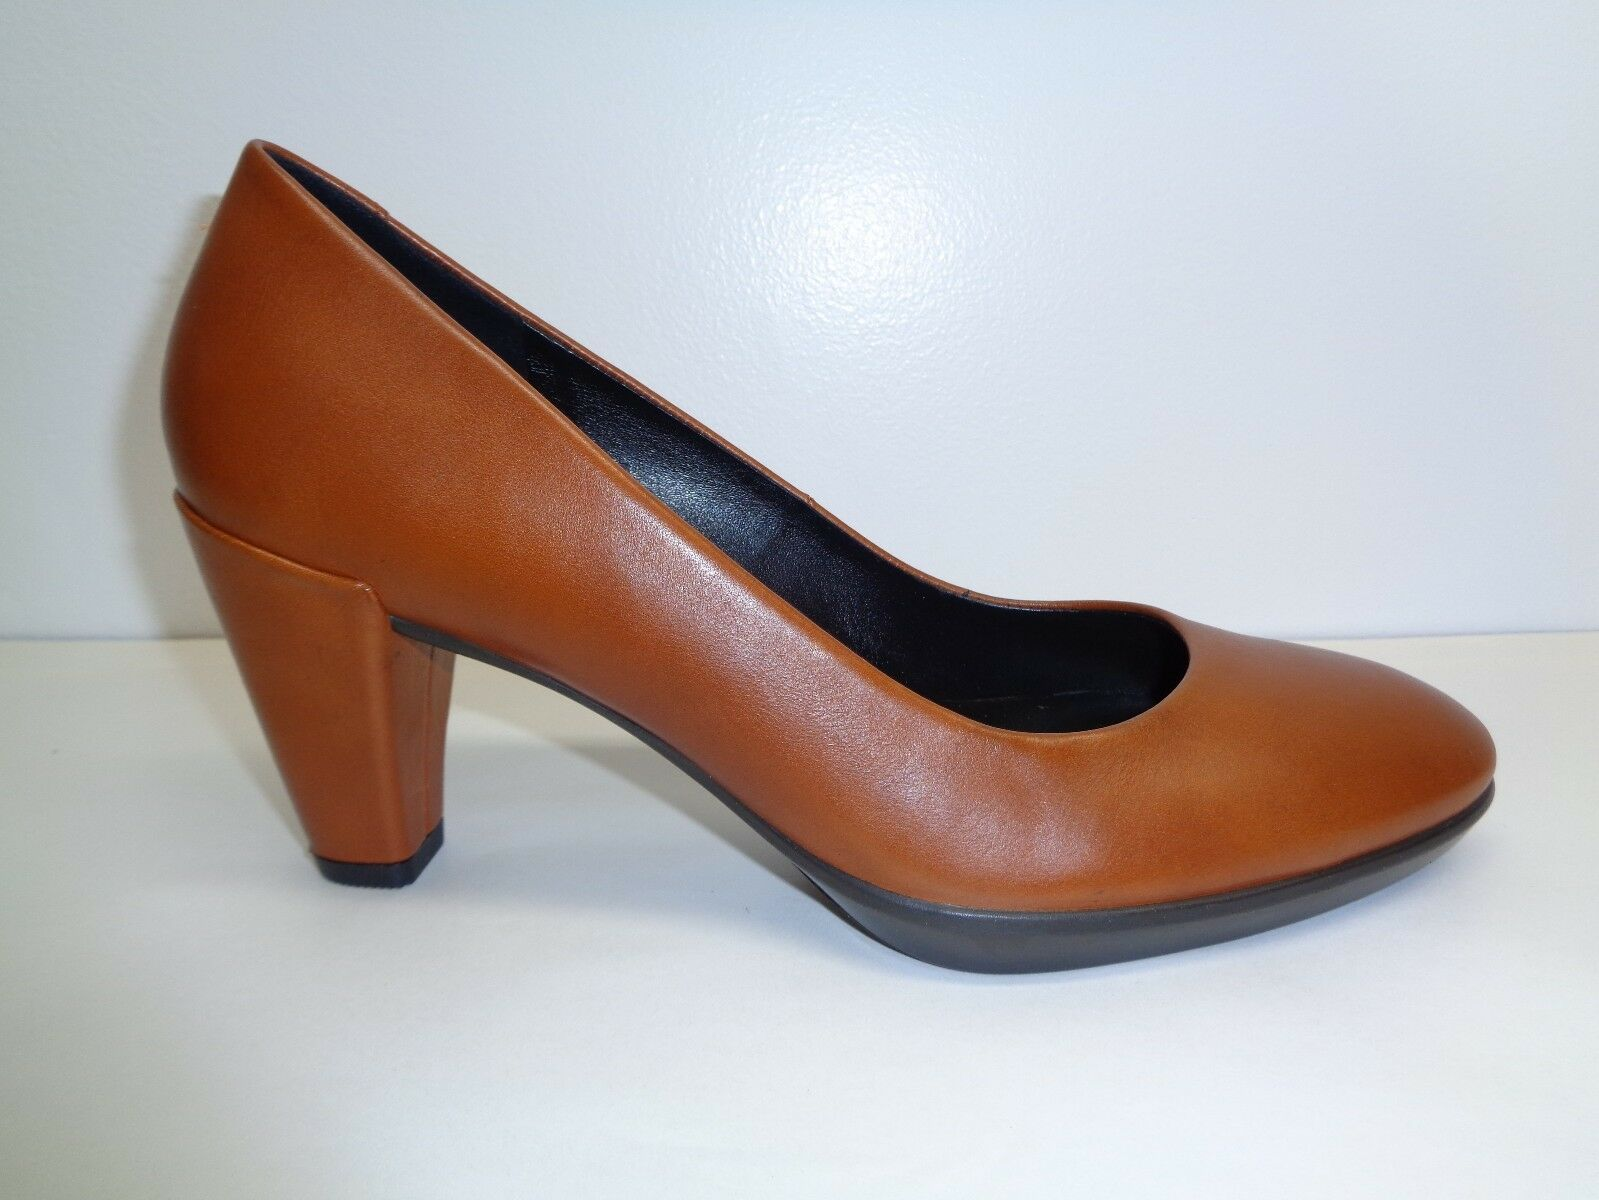 Ecco Size 6 to 6.5 Eur 37 SHAPE 55 Brown Pelle Heels Pumps New Donna Shoes